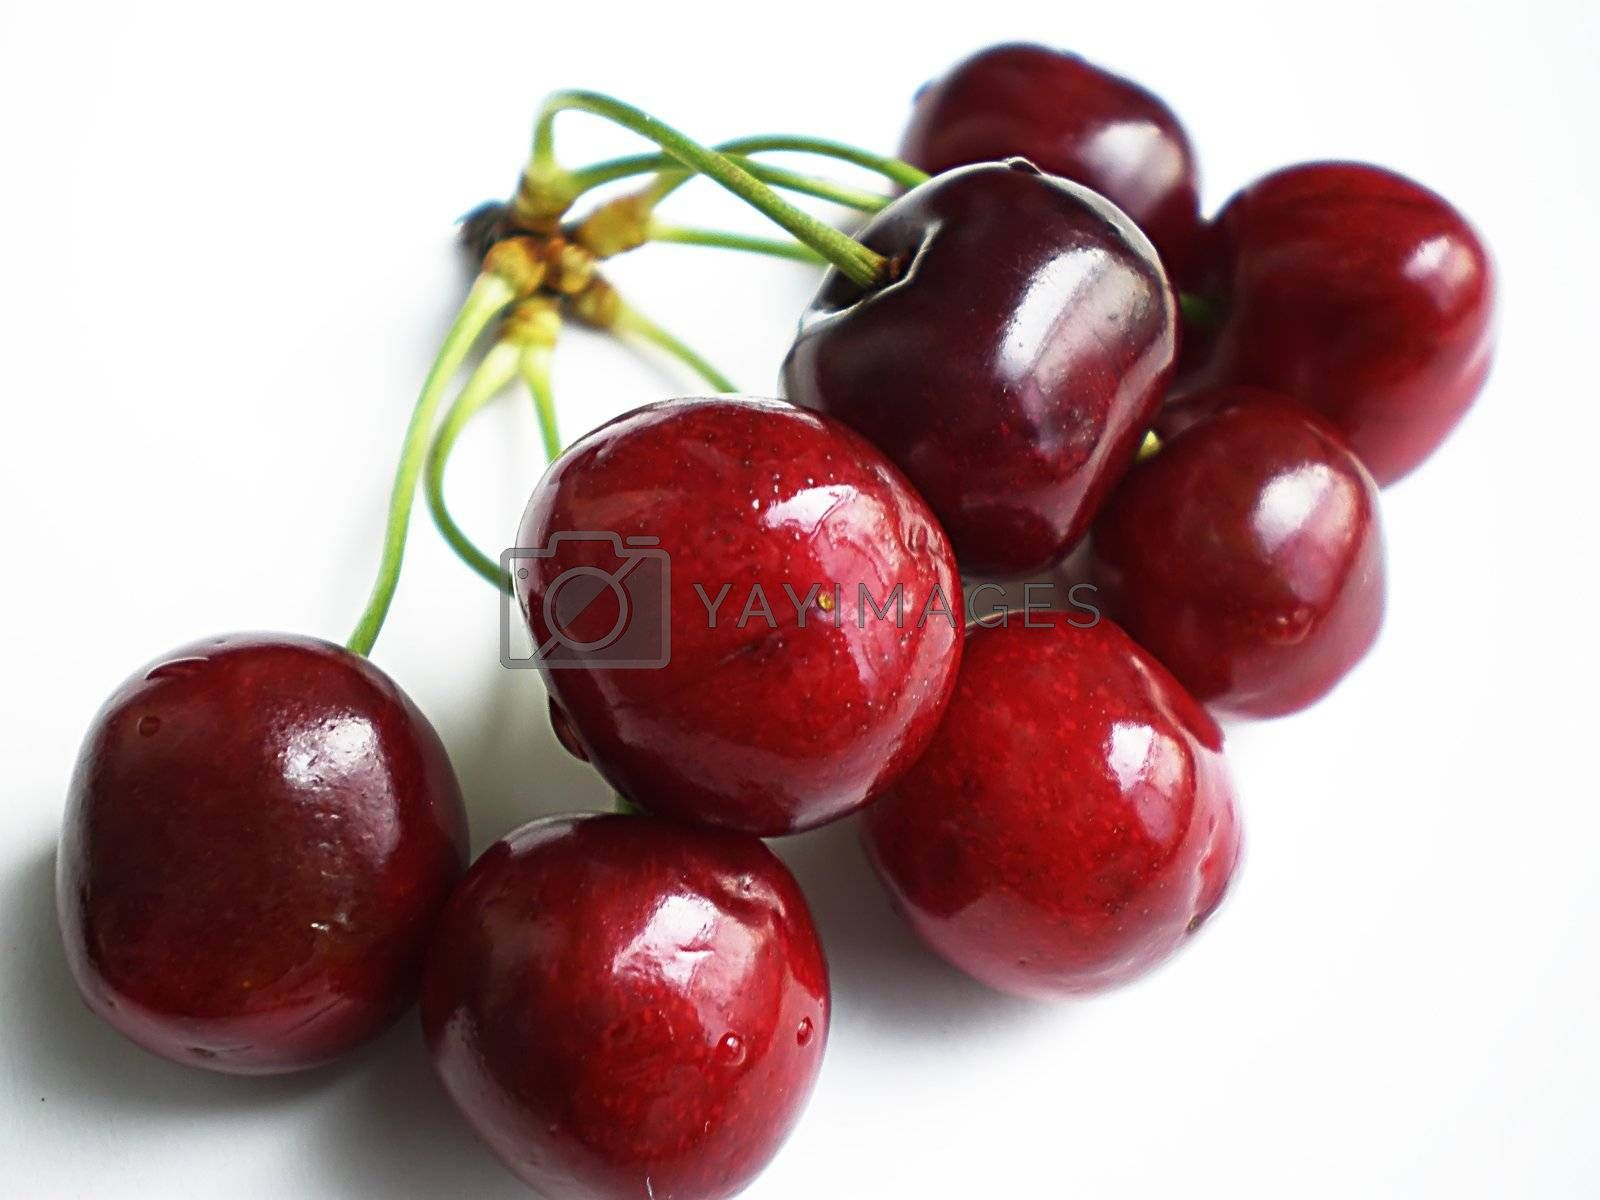 Royalty free image of cherries by Dessie_bg